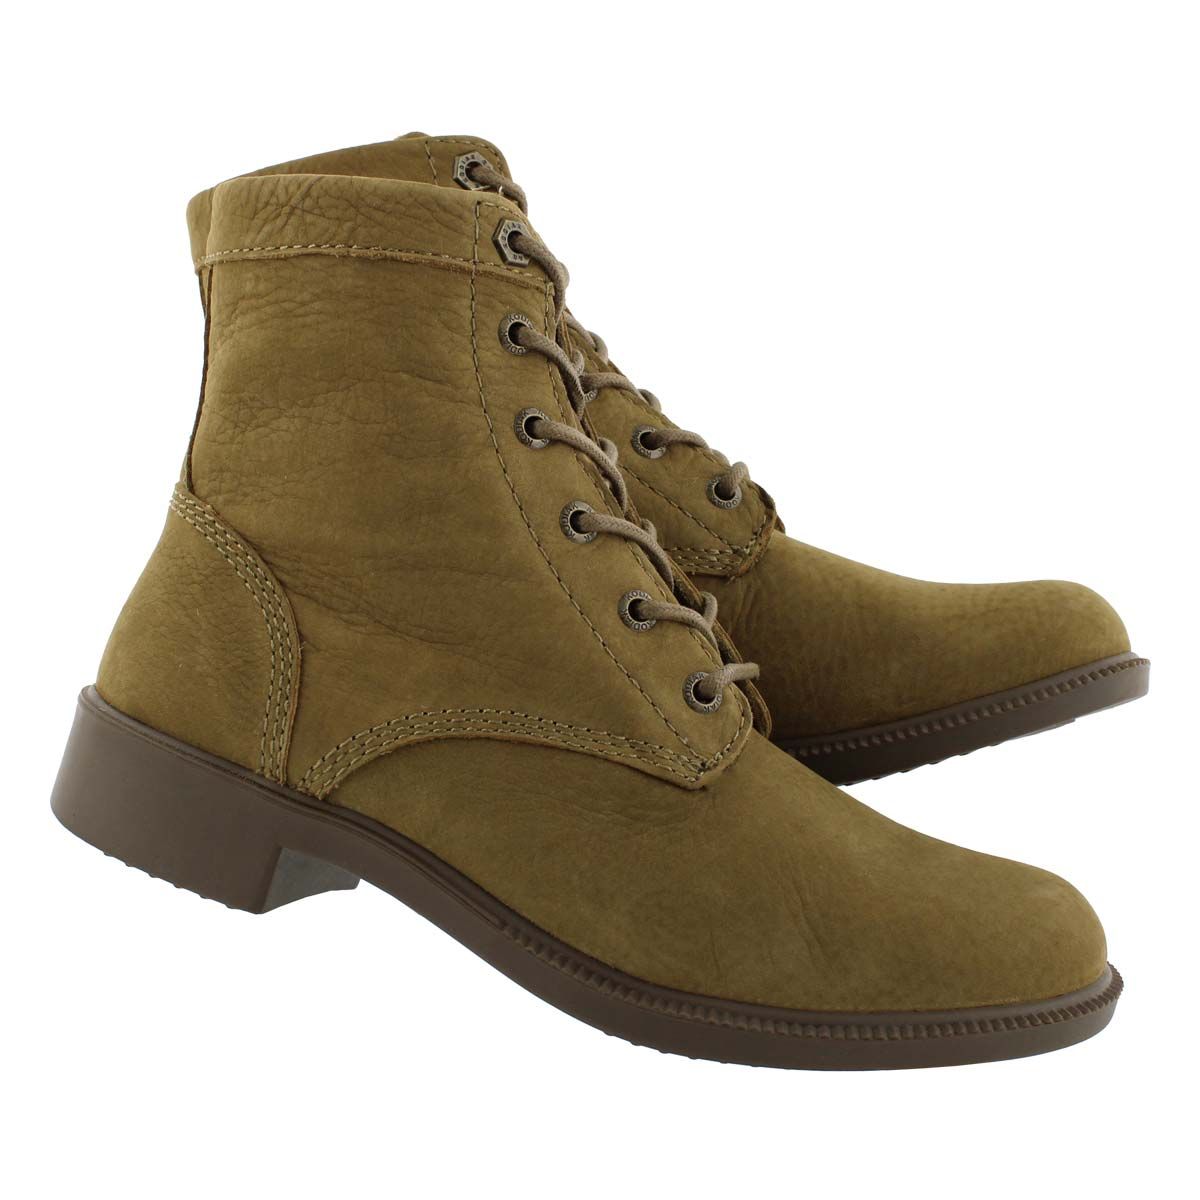 Lds Original olv wtpf lace up ankle boot